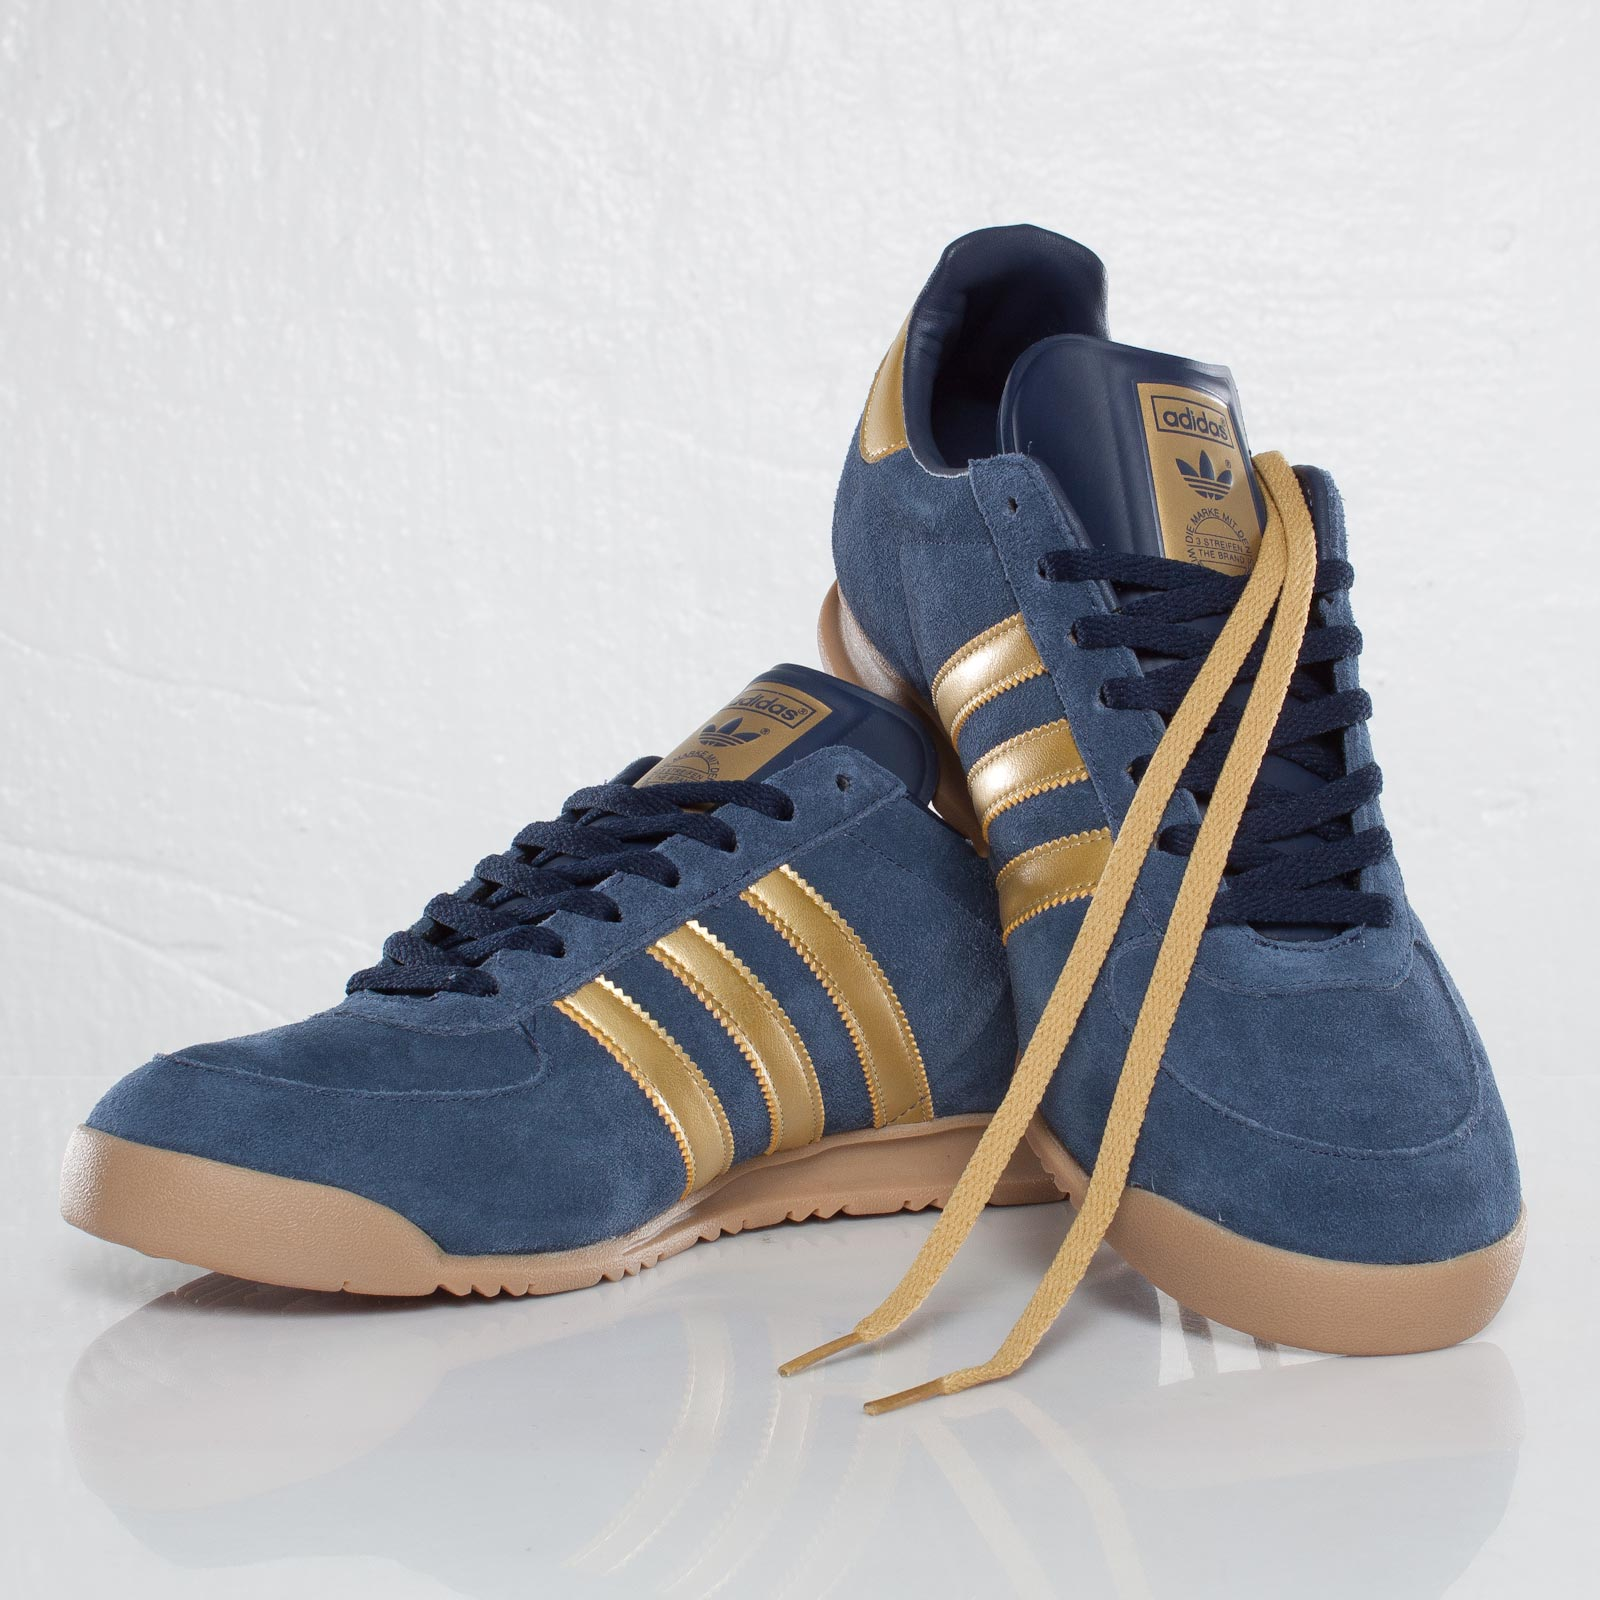 265a7ba4159a adidas originals milano blue